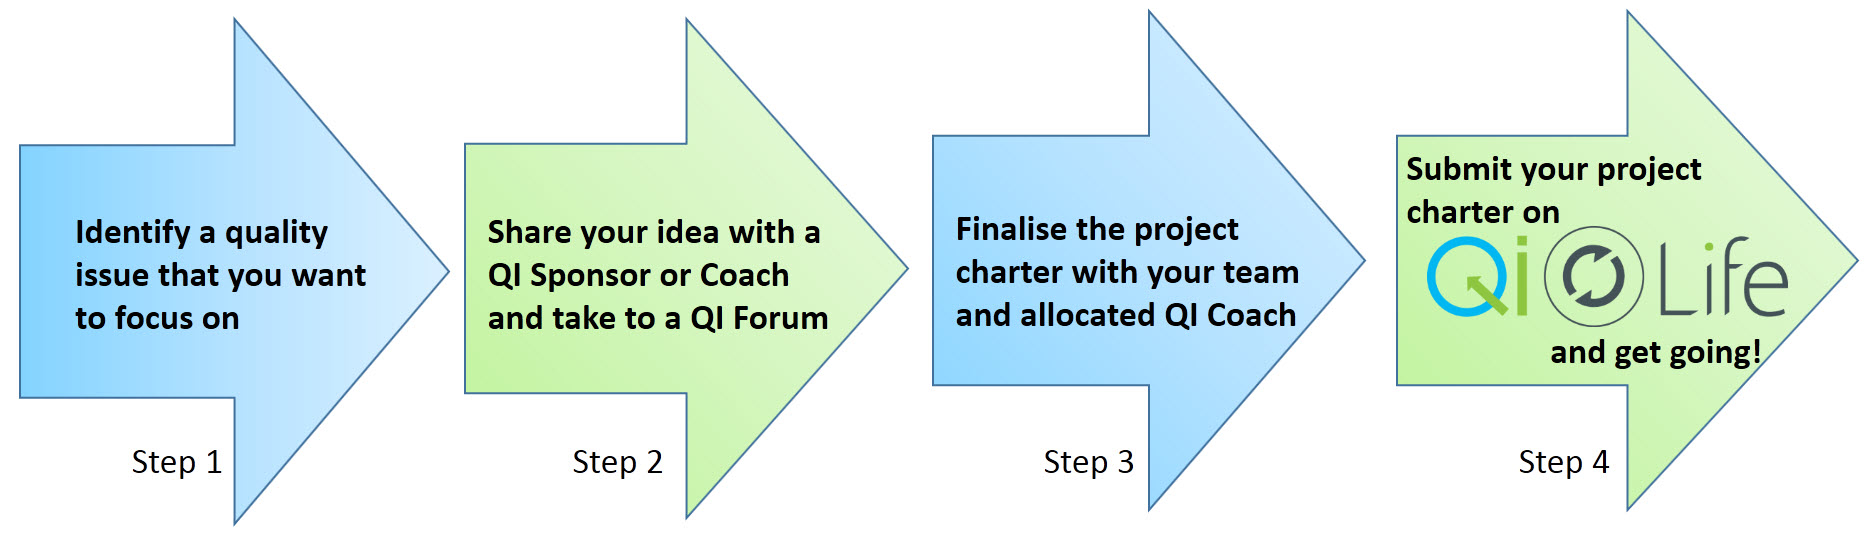 Starting a QI project - 4 step process v3